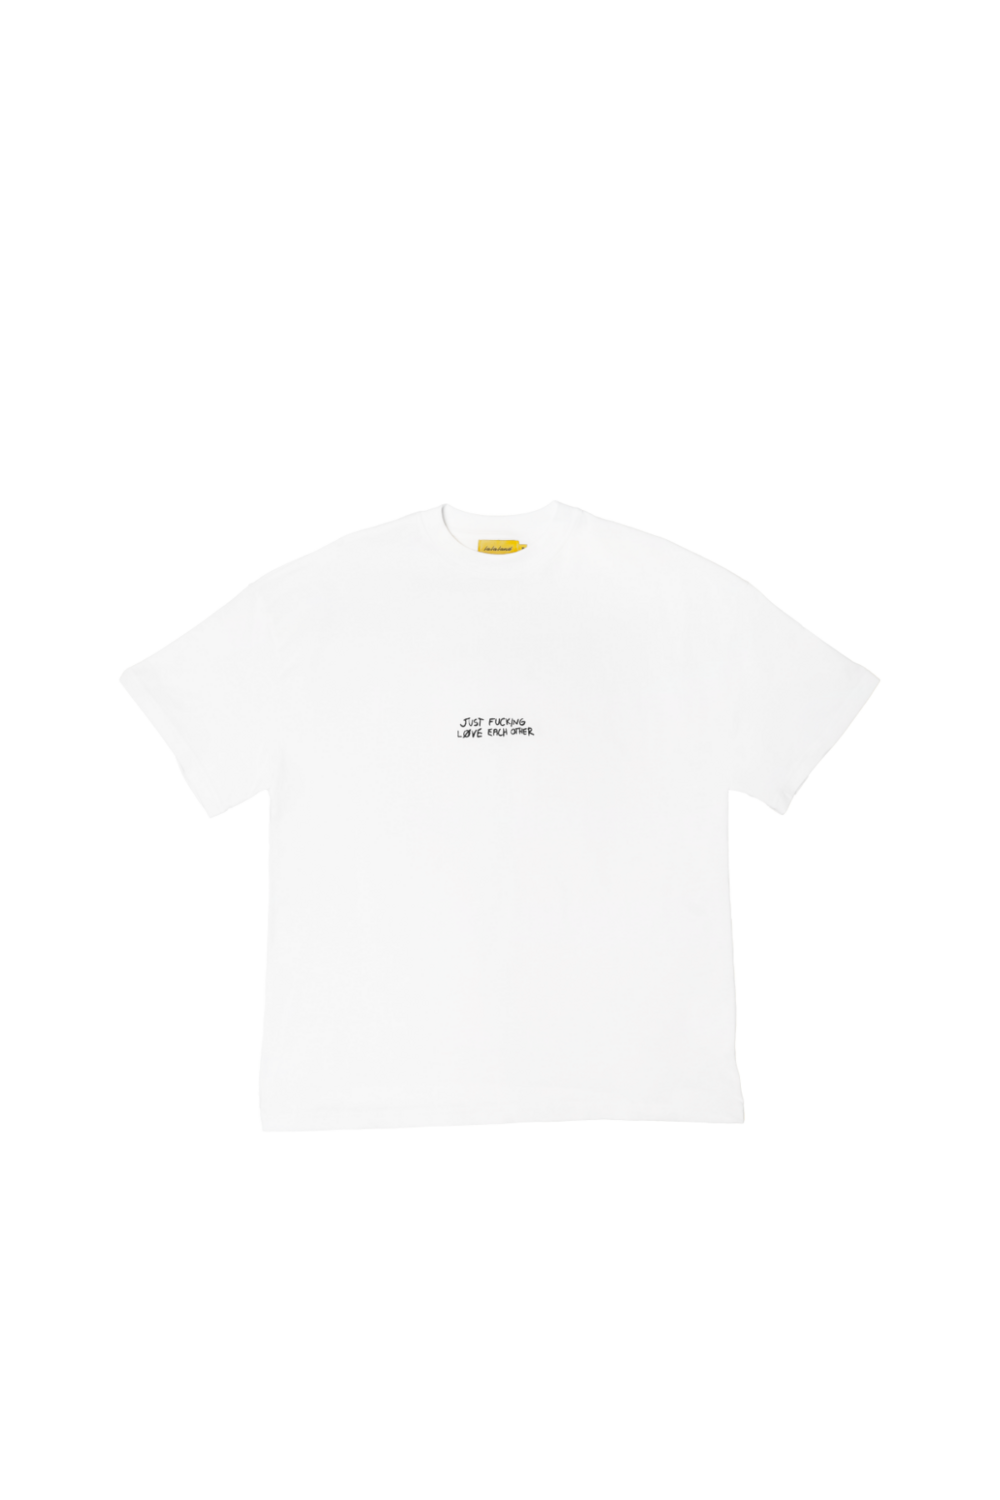 Just F*cking Love Each Other Tee